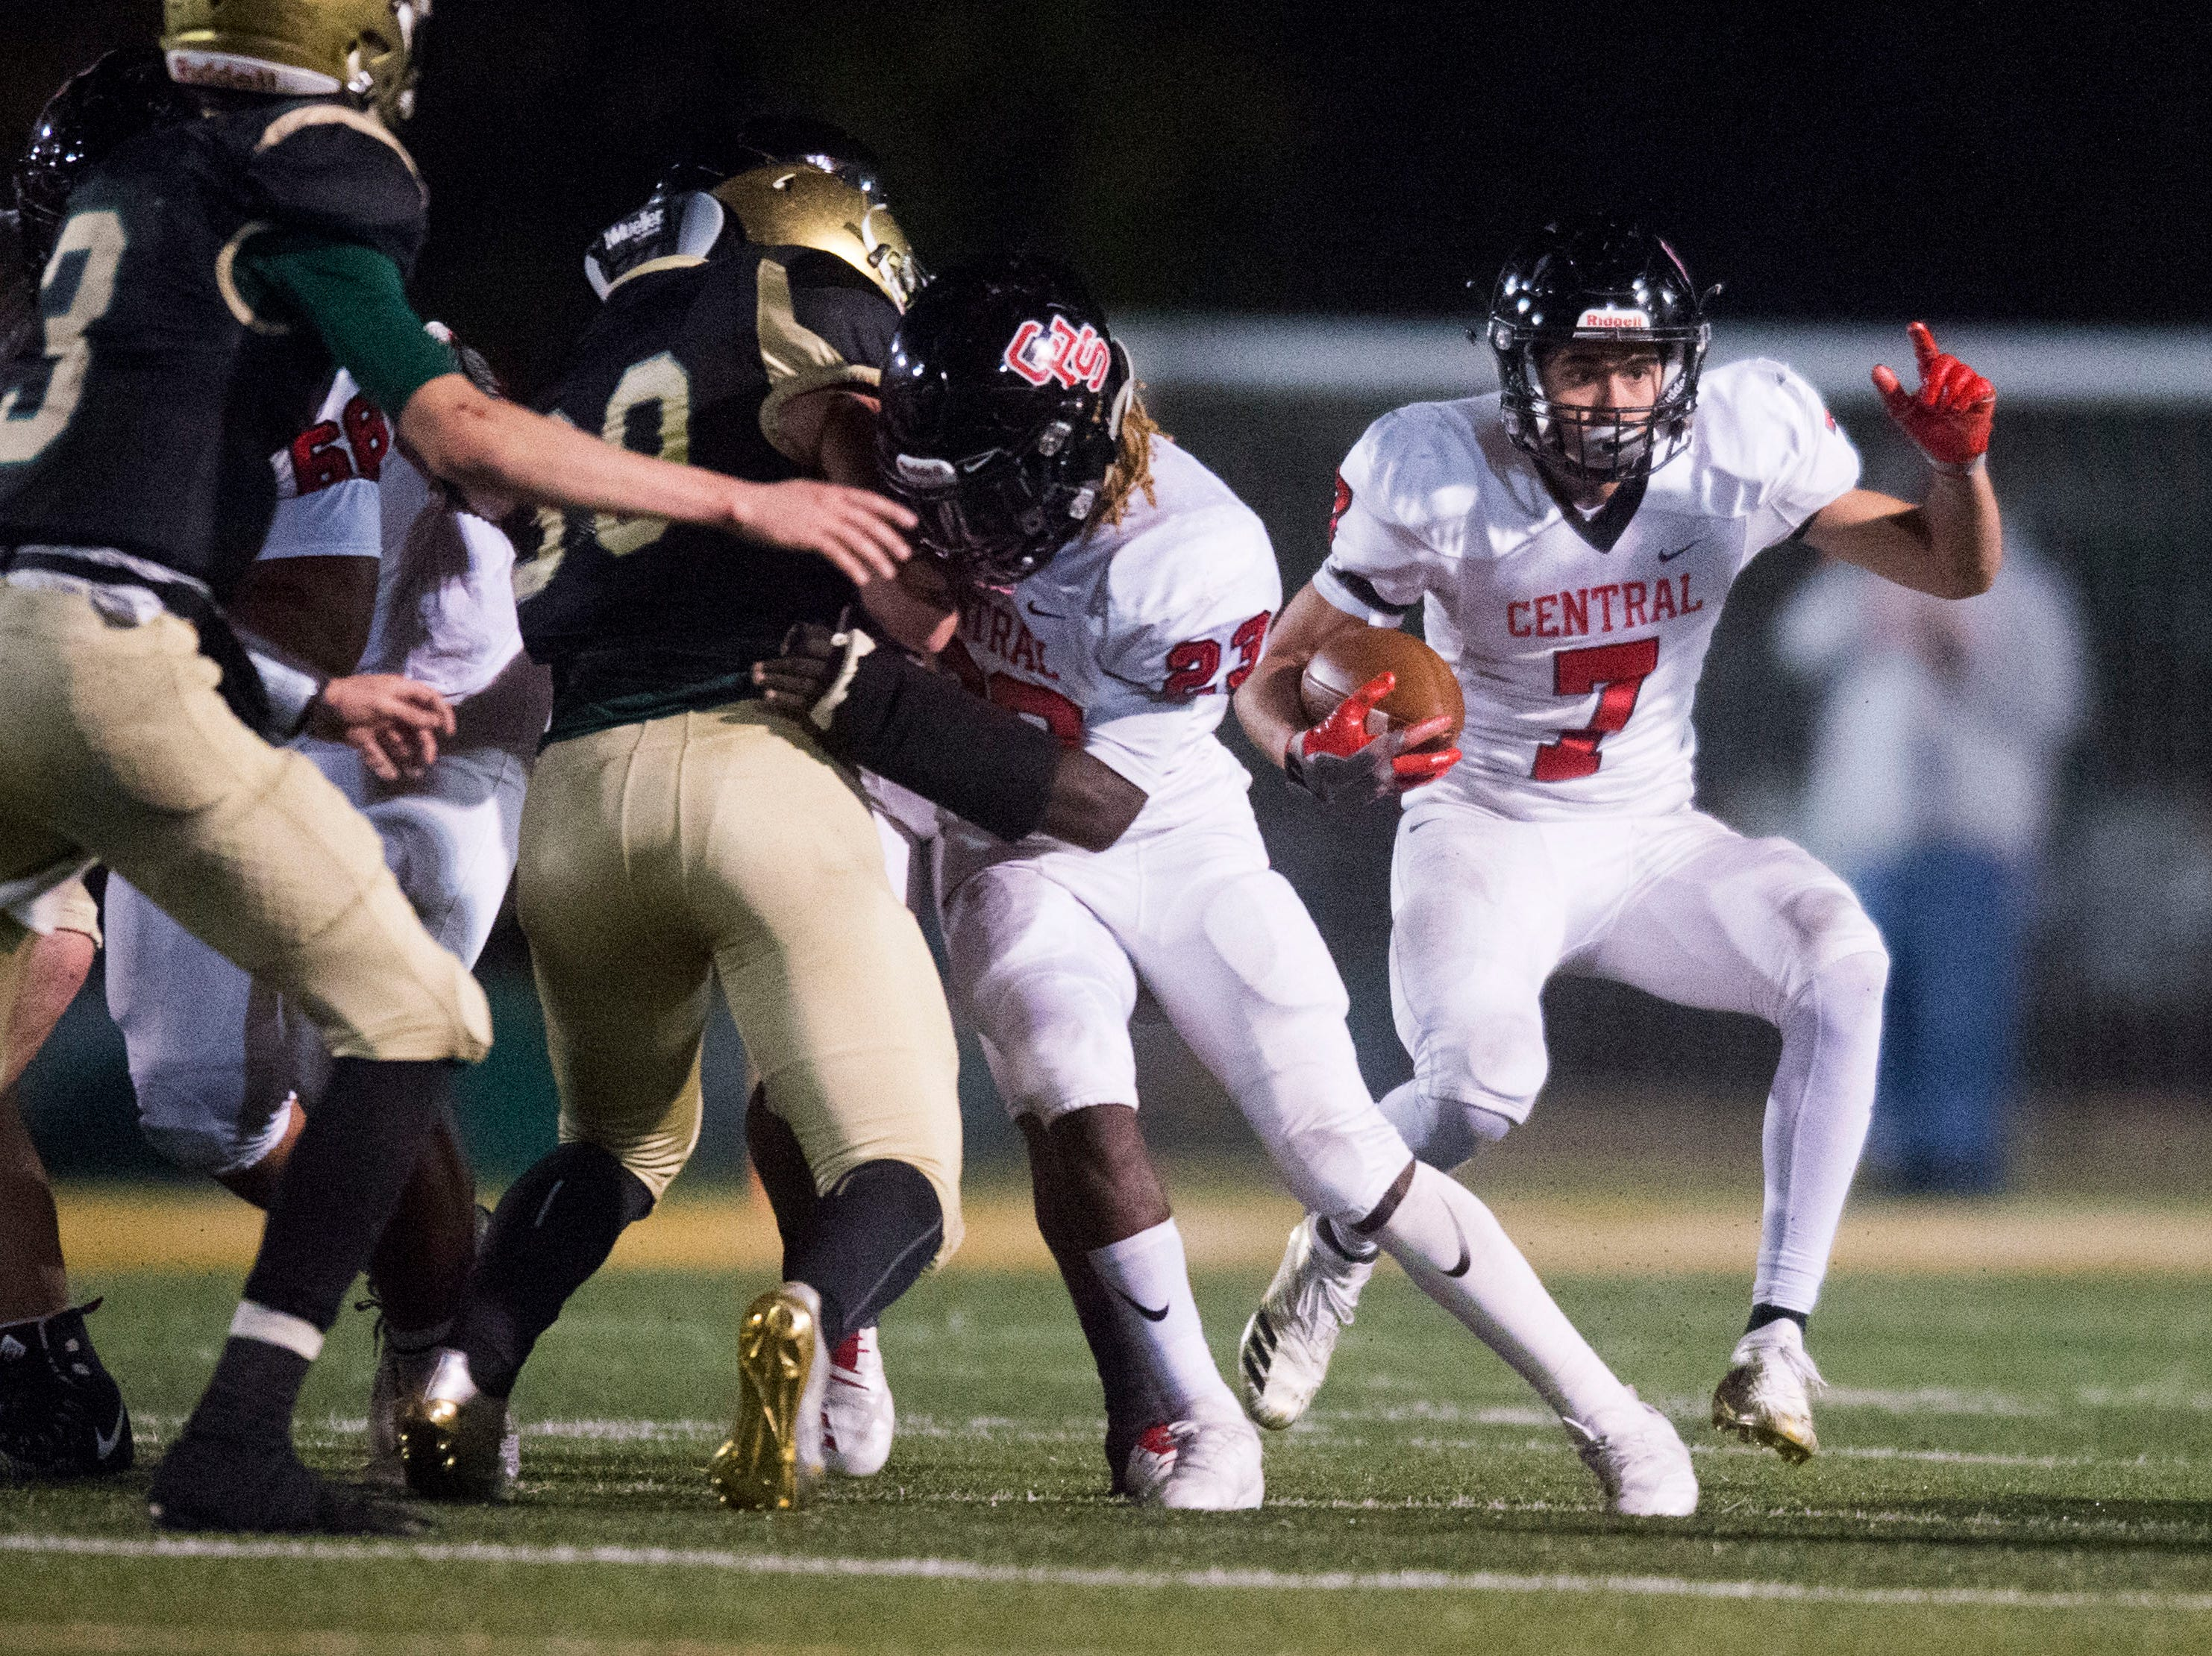 Central's Braden Gaston (7) runs the ball during a Class 5A semifinal game between Central at Catholic Friday, Nov. 23, 2018. Central defeated Catholic 24-19.